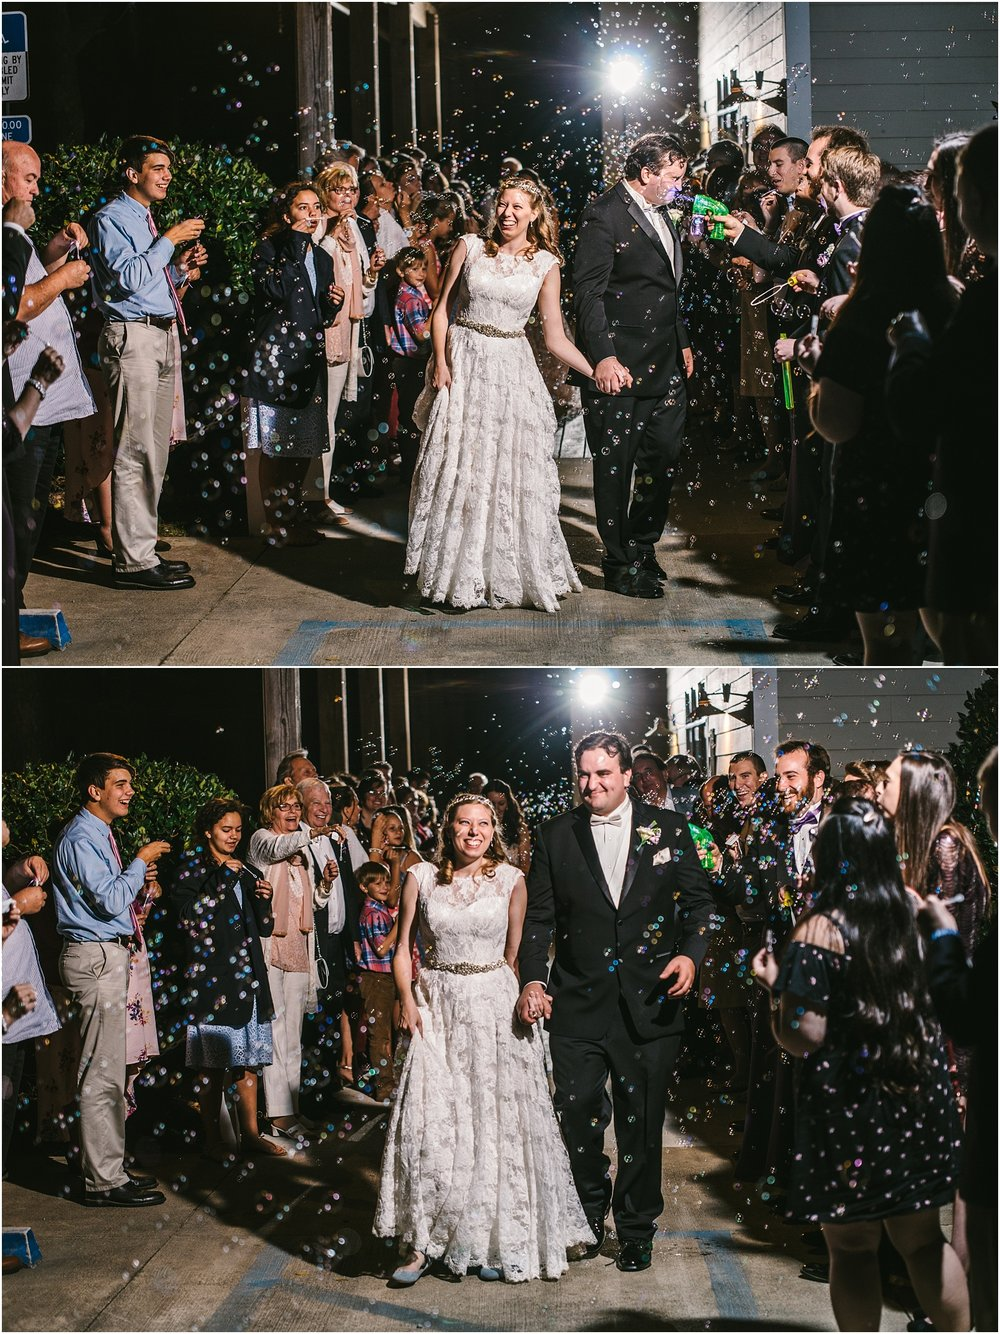 The groom was such a great sport when one of his guys shot the bubble gun right in his face. And the bride...kept smiling as she did all day!